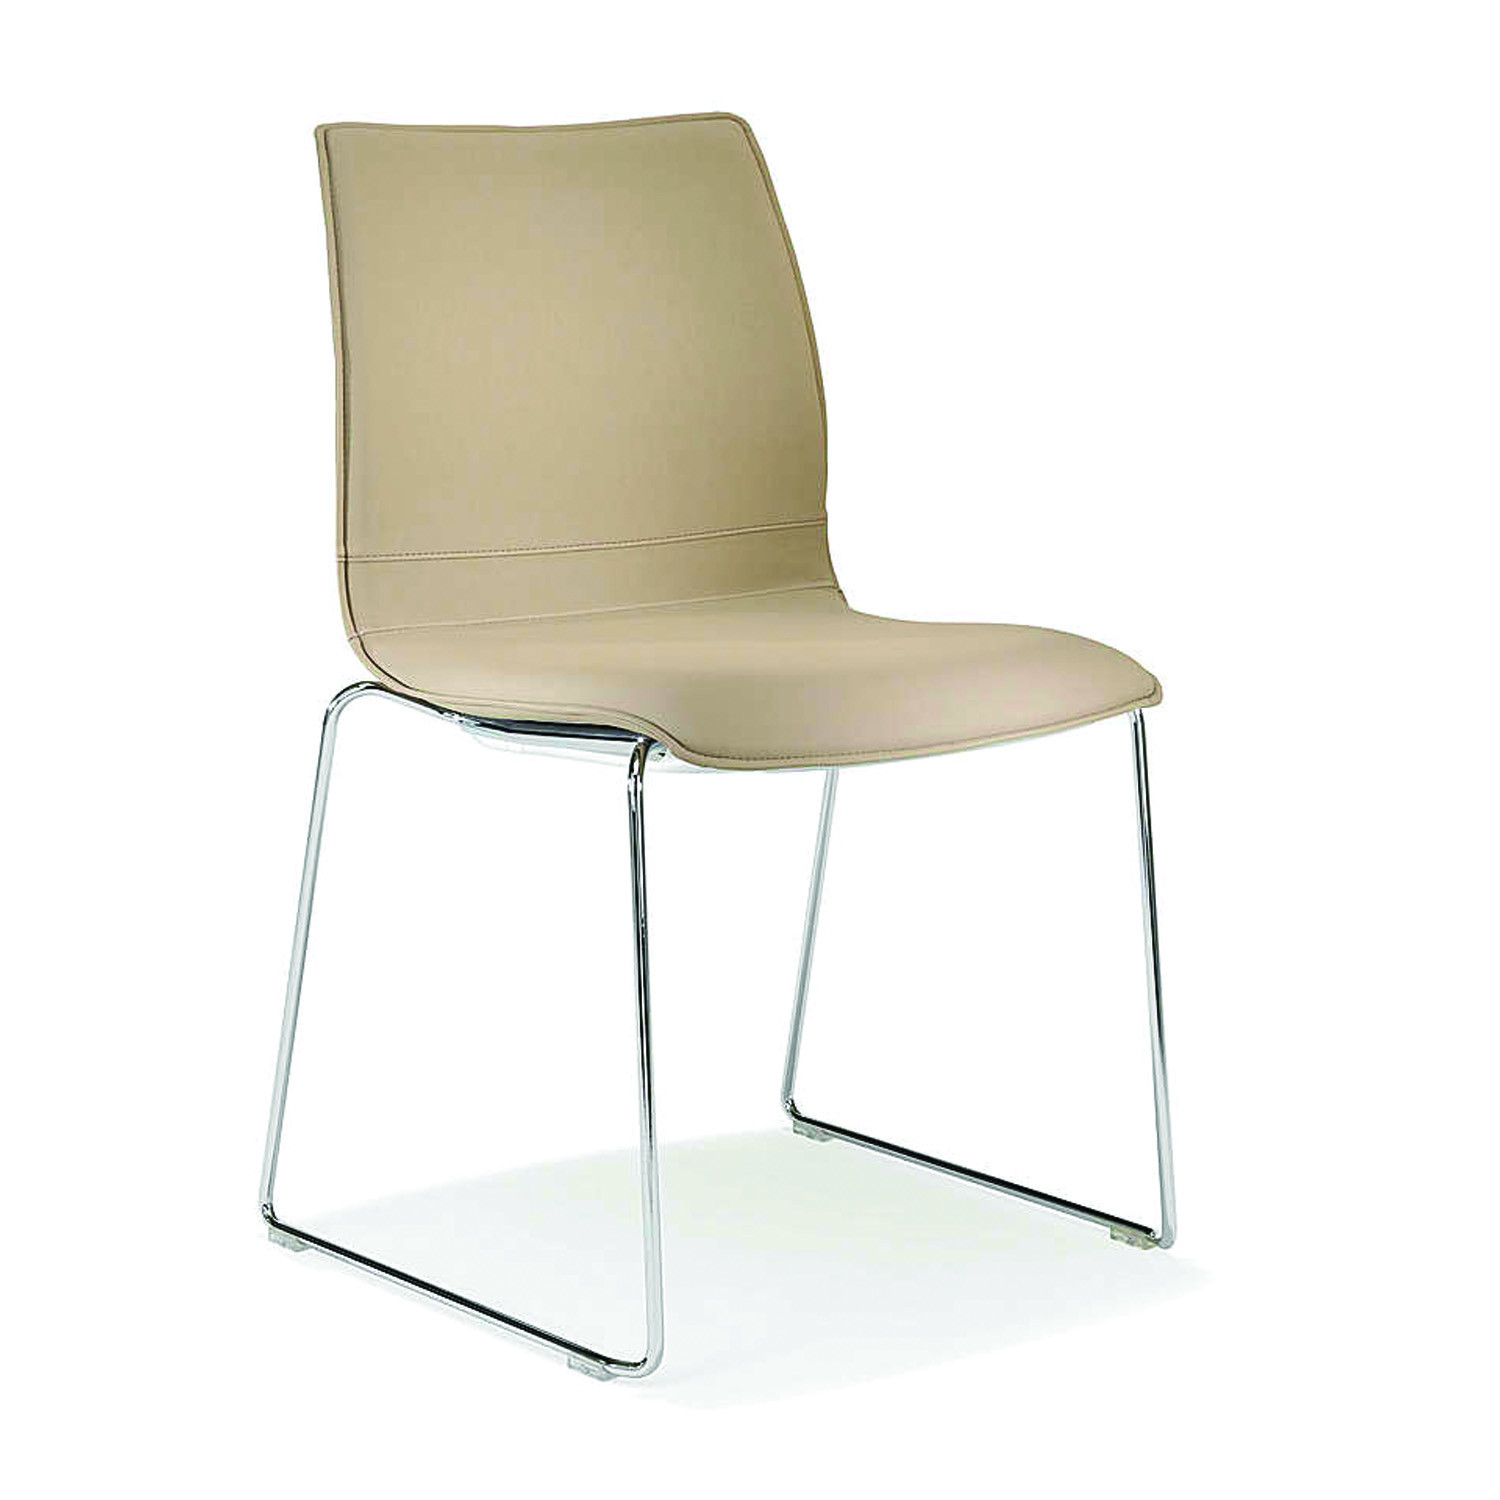 2100 Uni_Verso Sled-Base Upholstered Chair